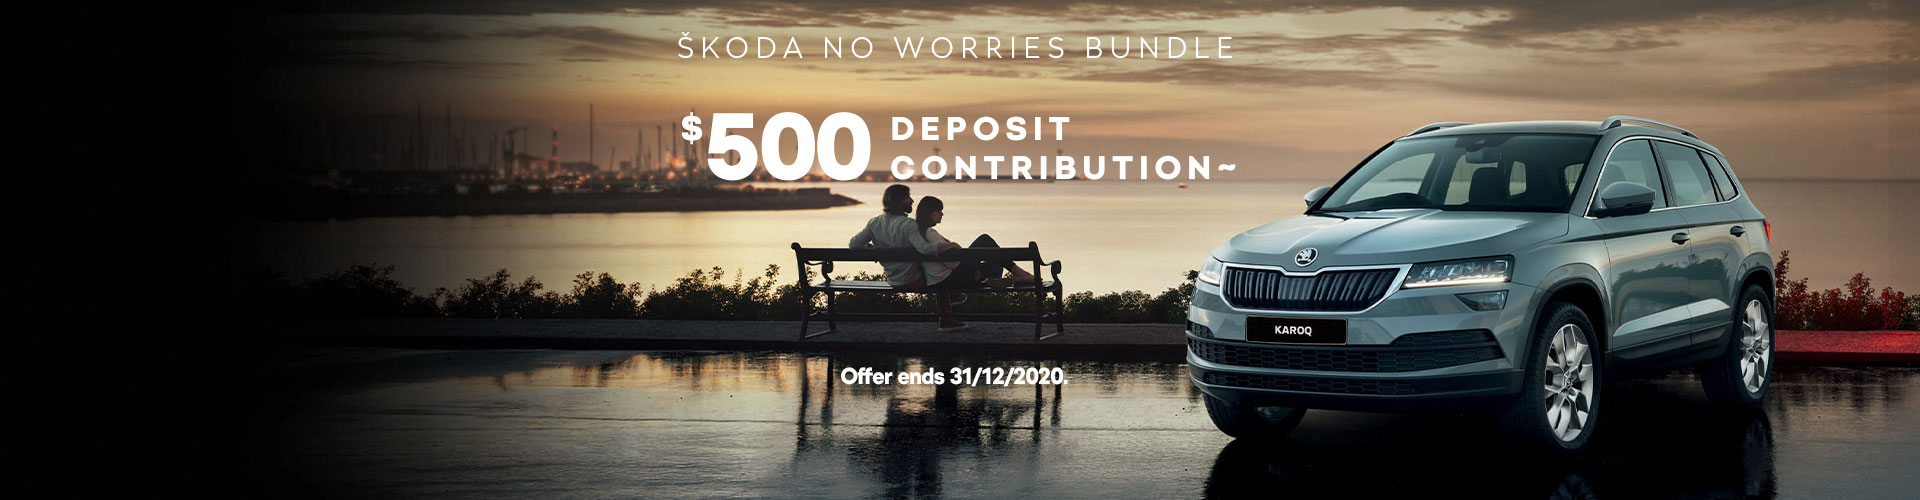 SKODA No Worries Bundle